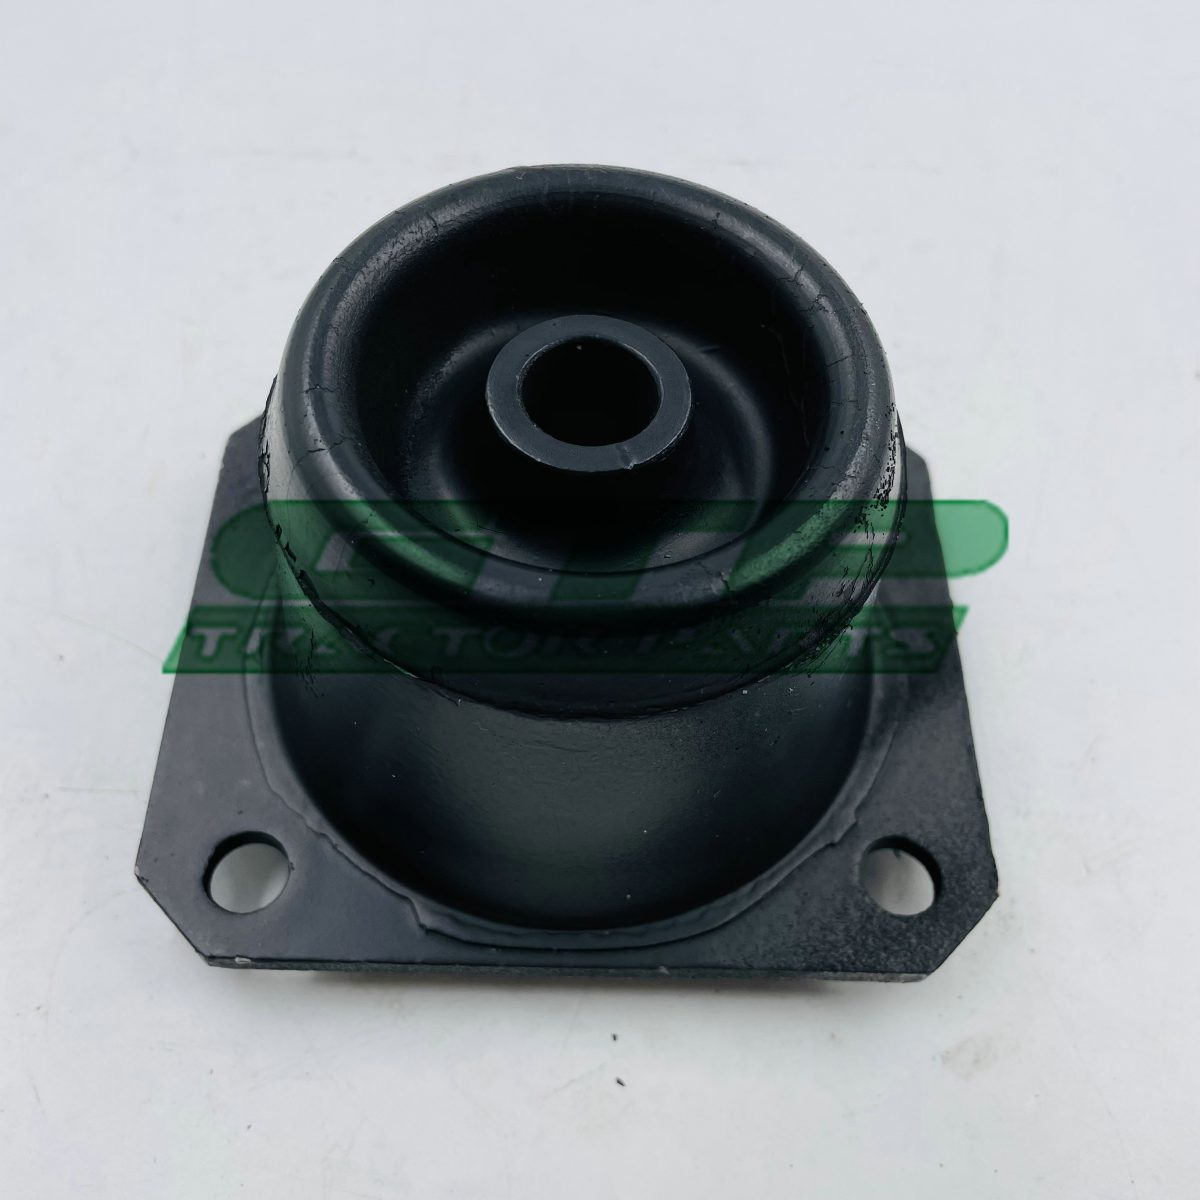 3399961R1 CAB MOUNTING BUSH RUBBER FOR TRACTORS